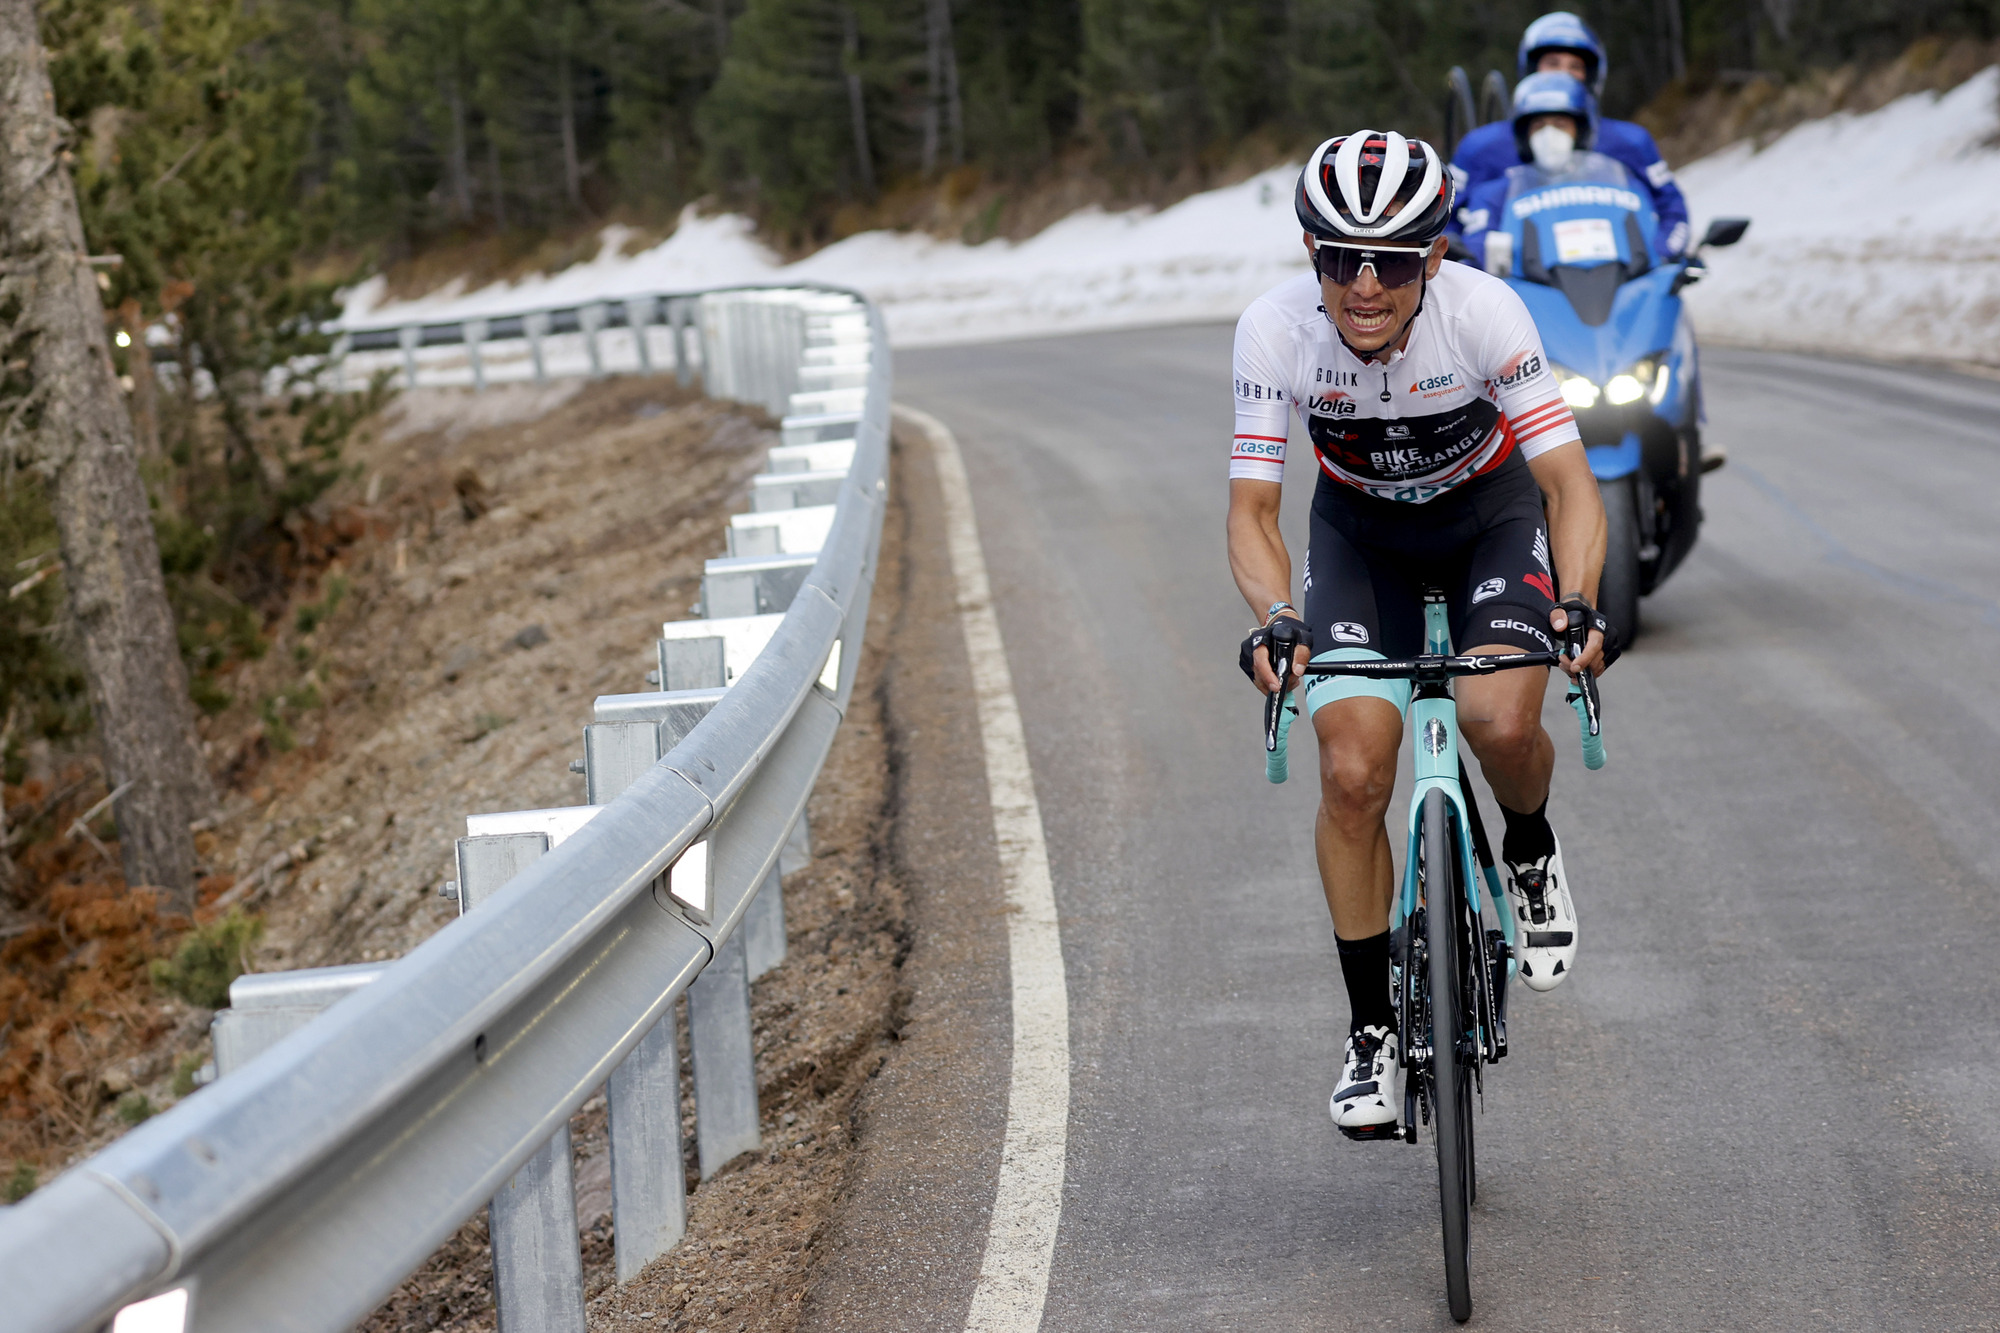 Esteban Chaves goes deep to win the stage